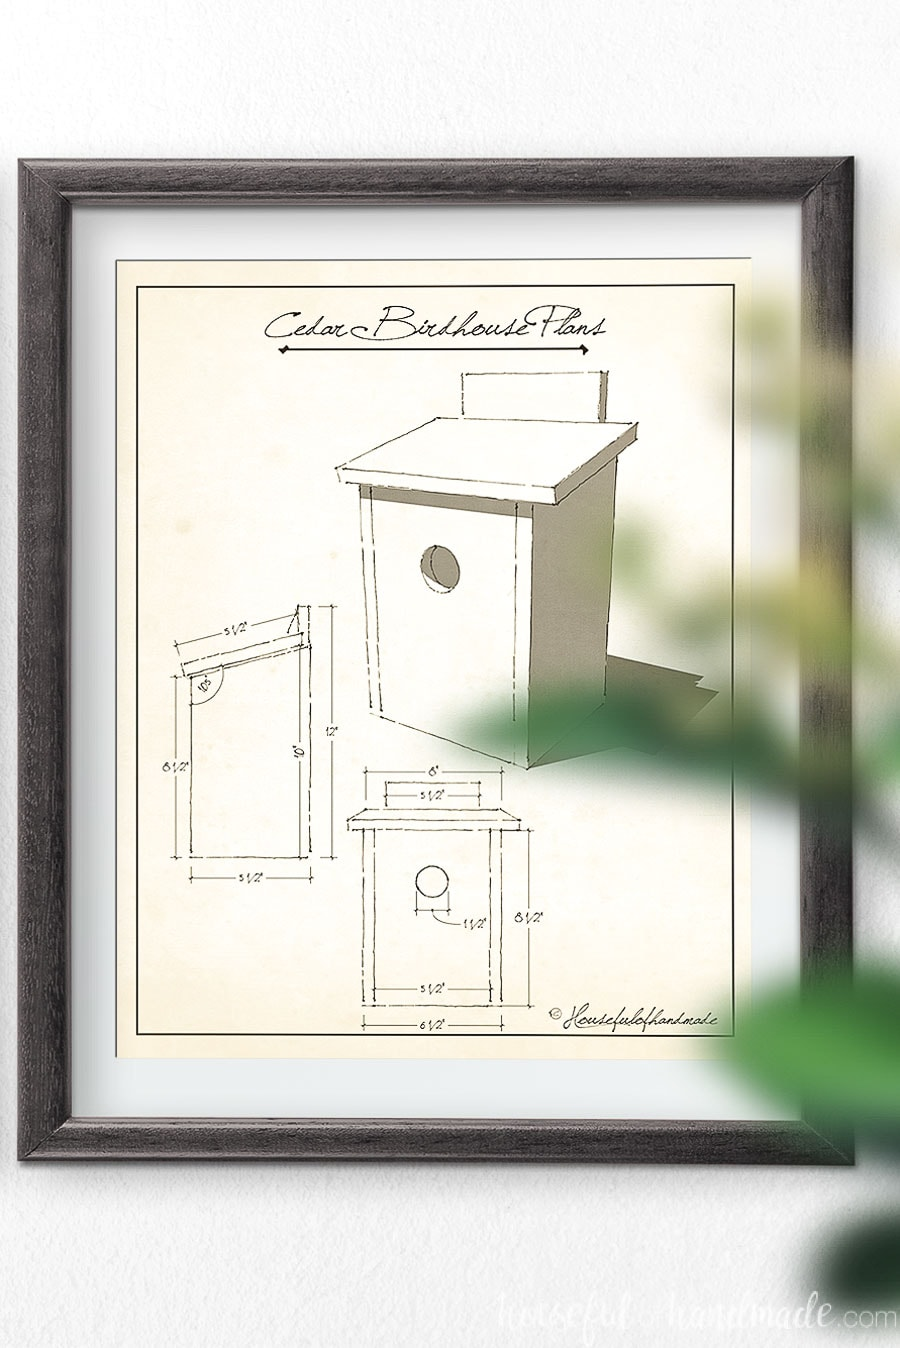 Cedar birdhouse plans art in a frame on the wall.